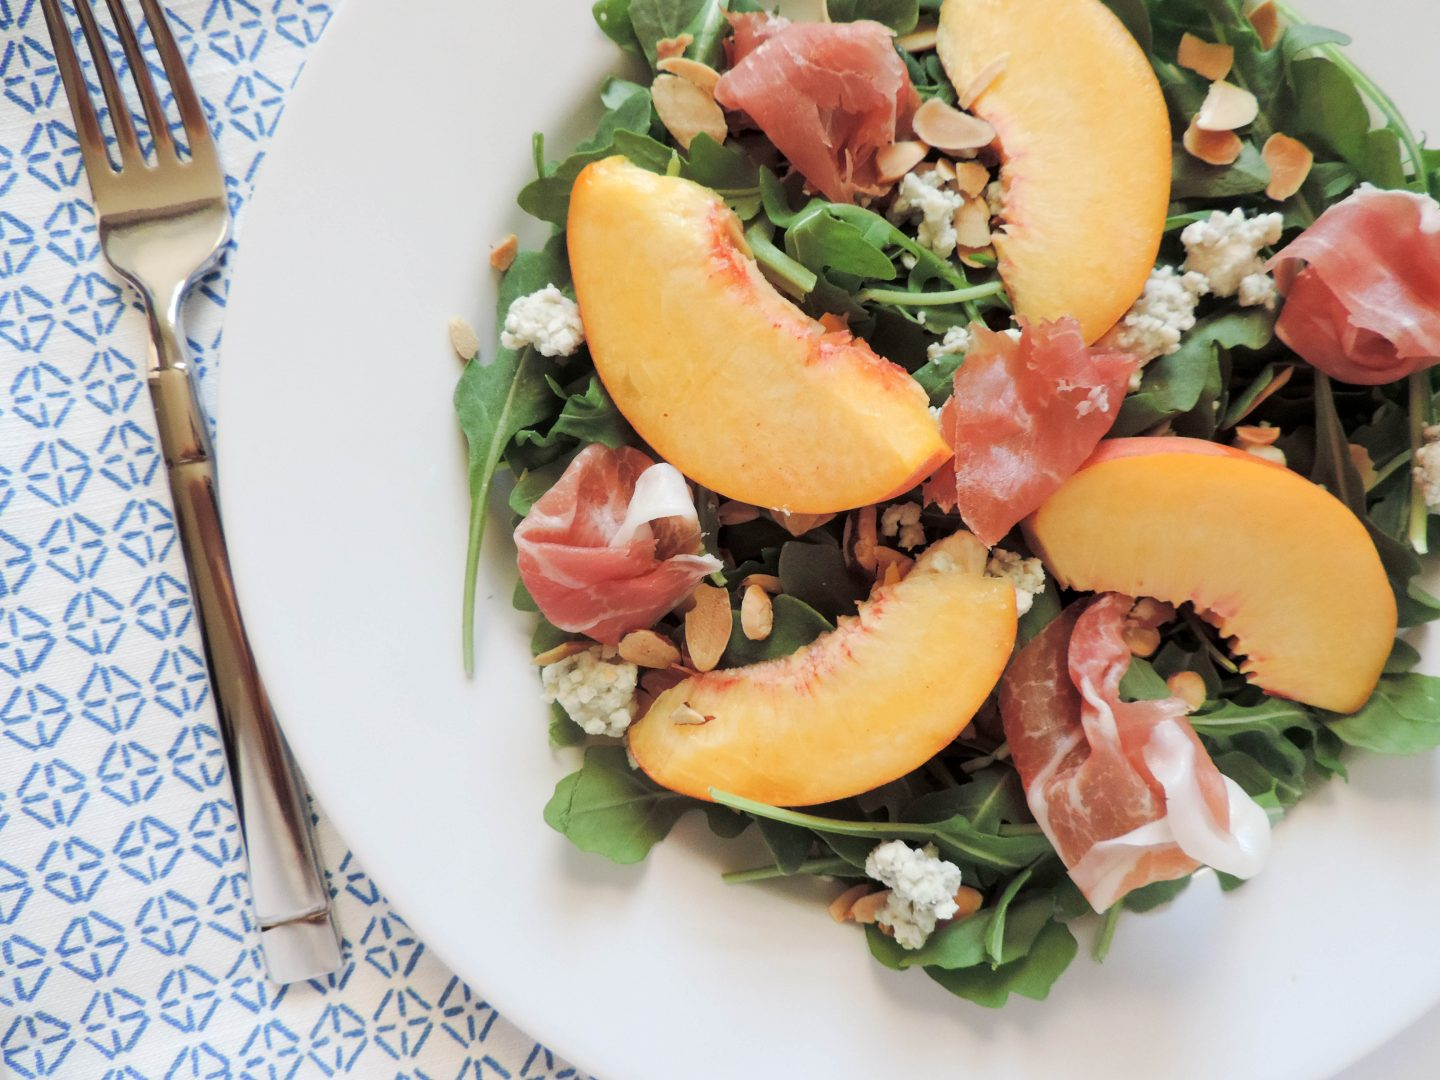 Peach and Prosciutto Arugula Salad